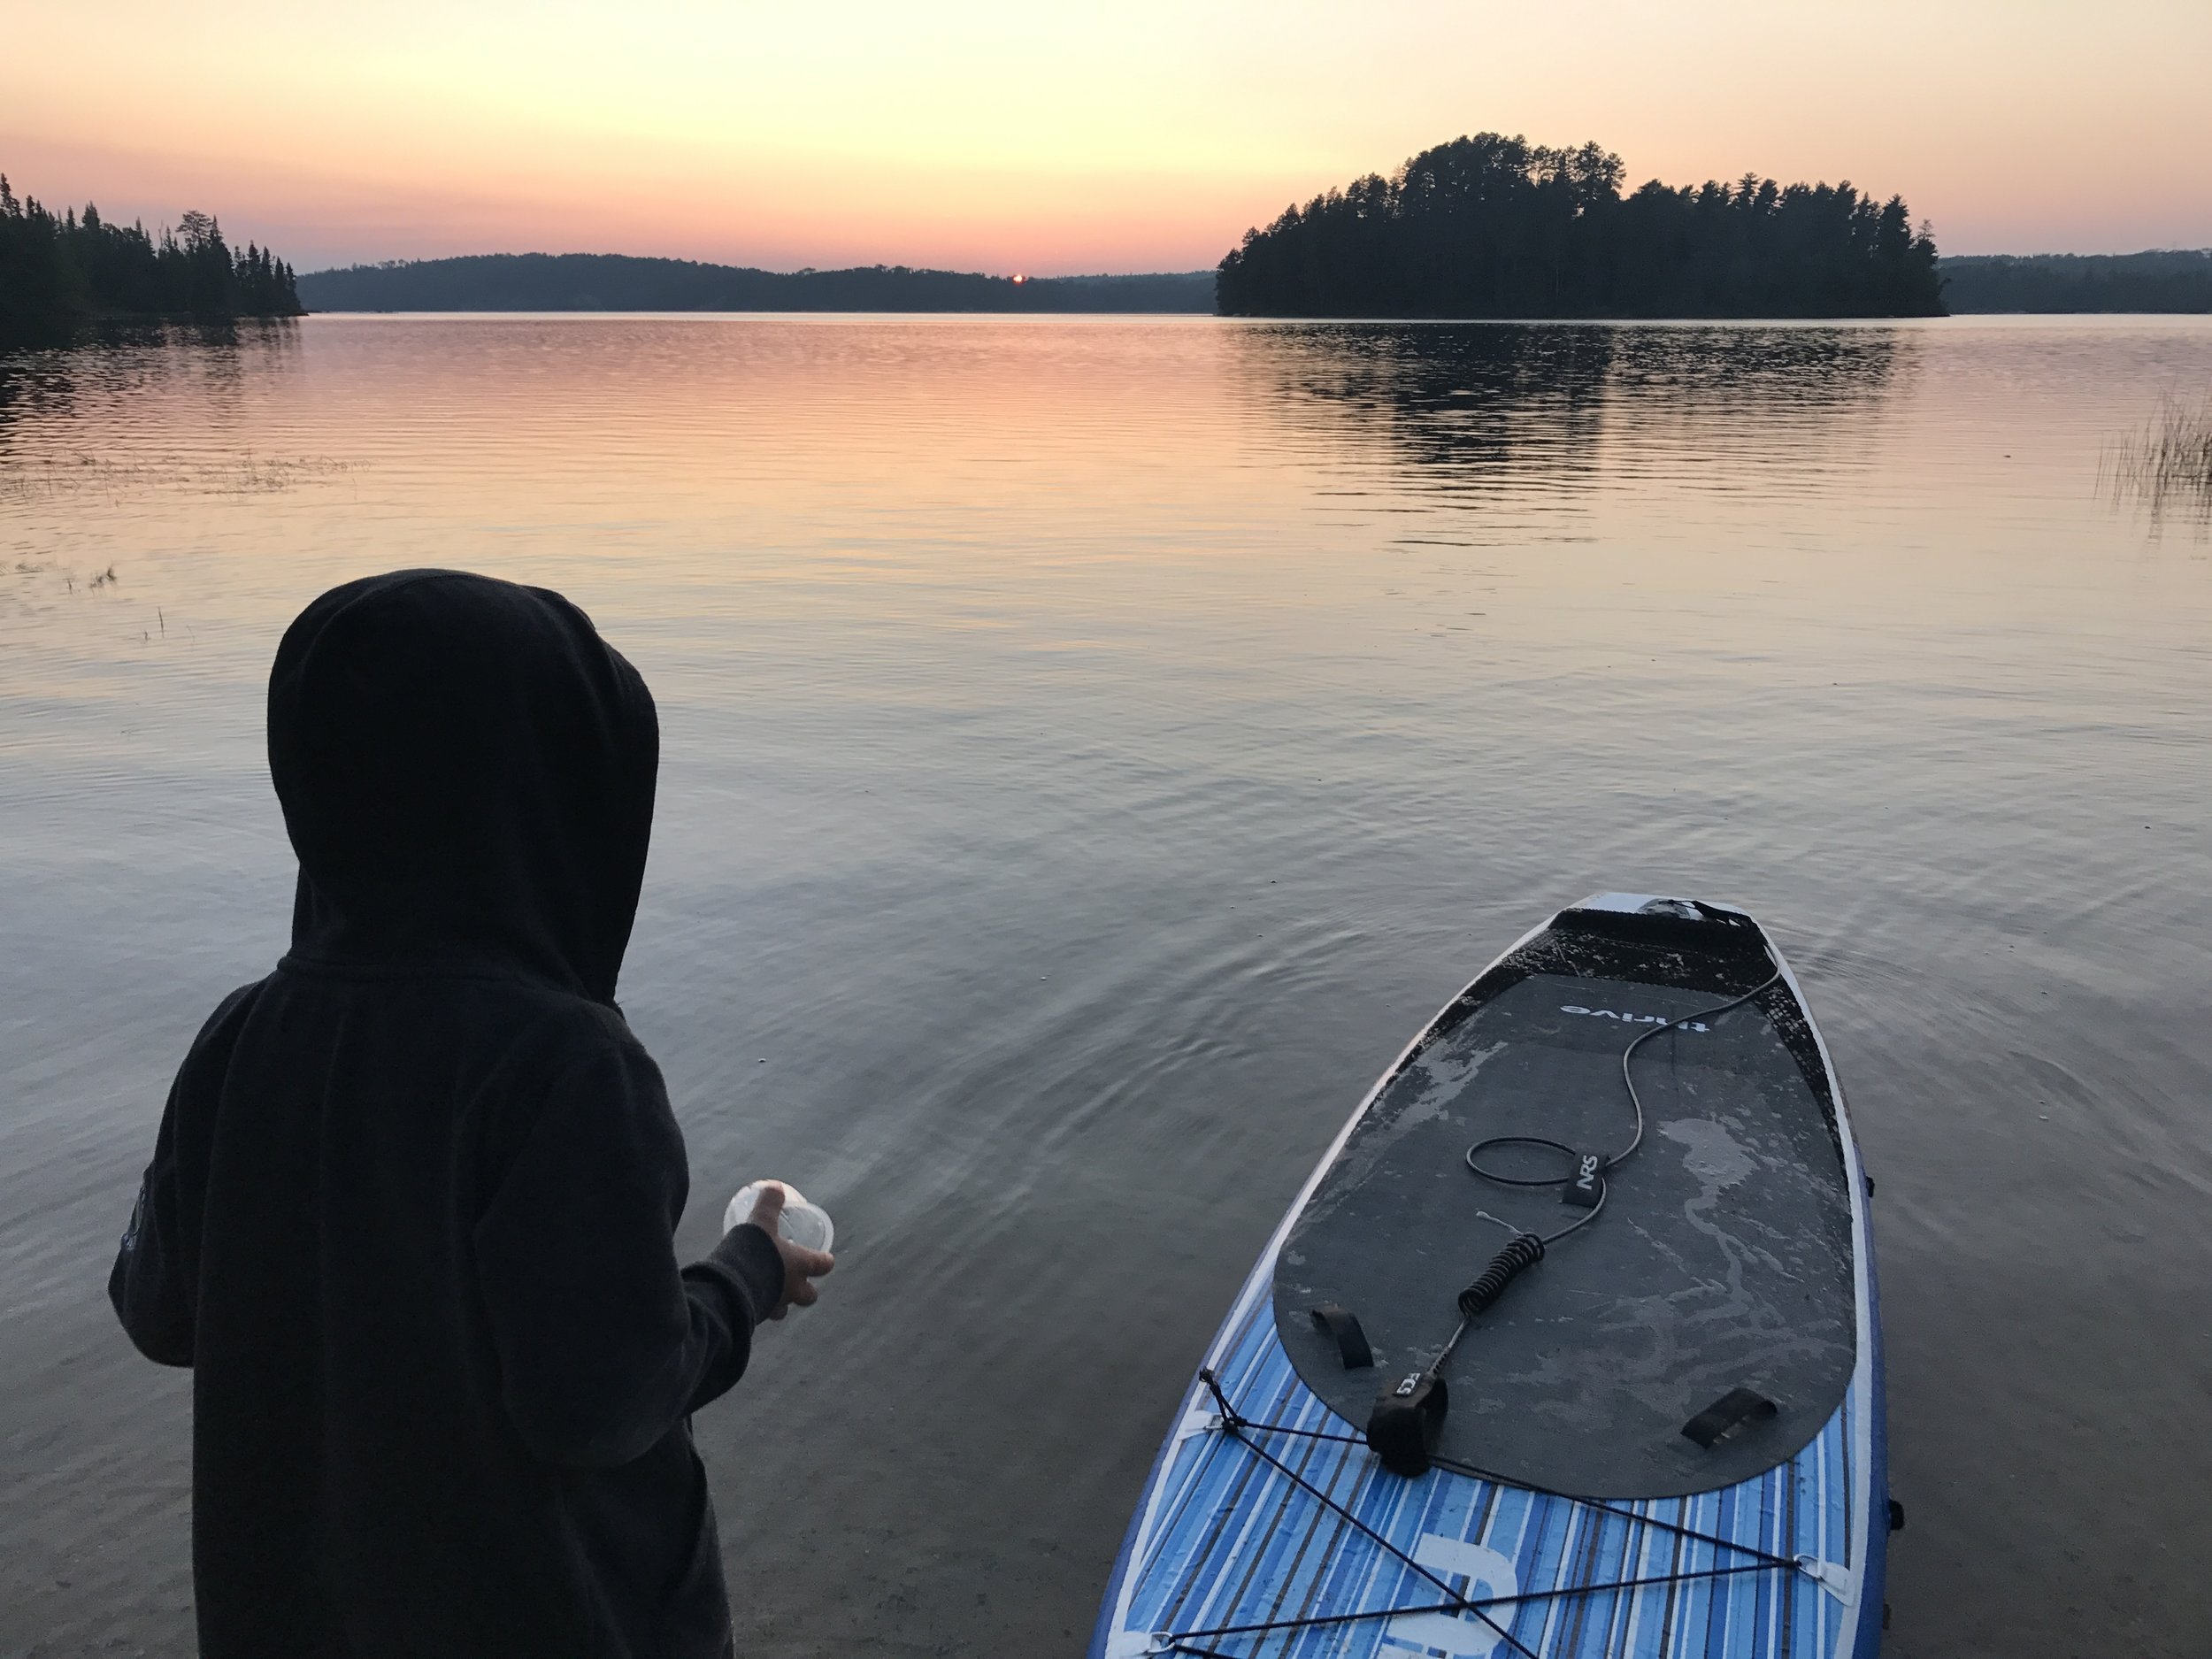 Sundown after a day on the water, Quetico, Ontario.